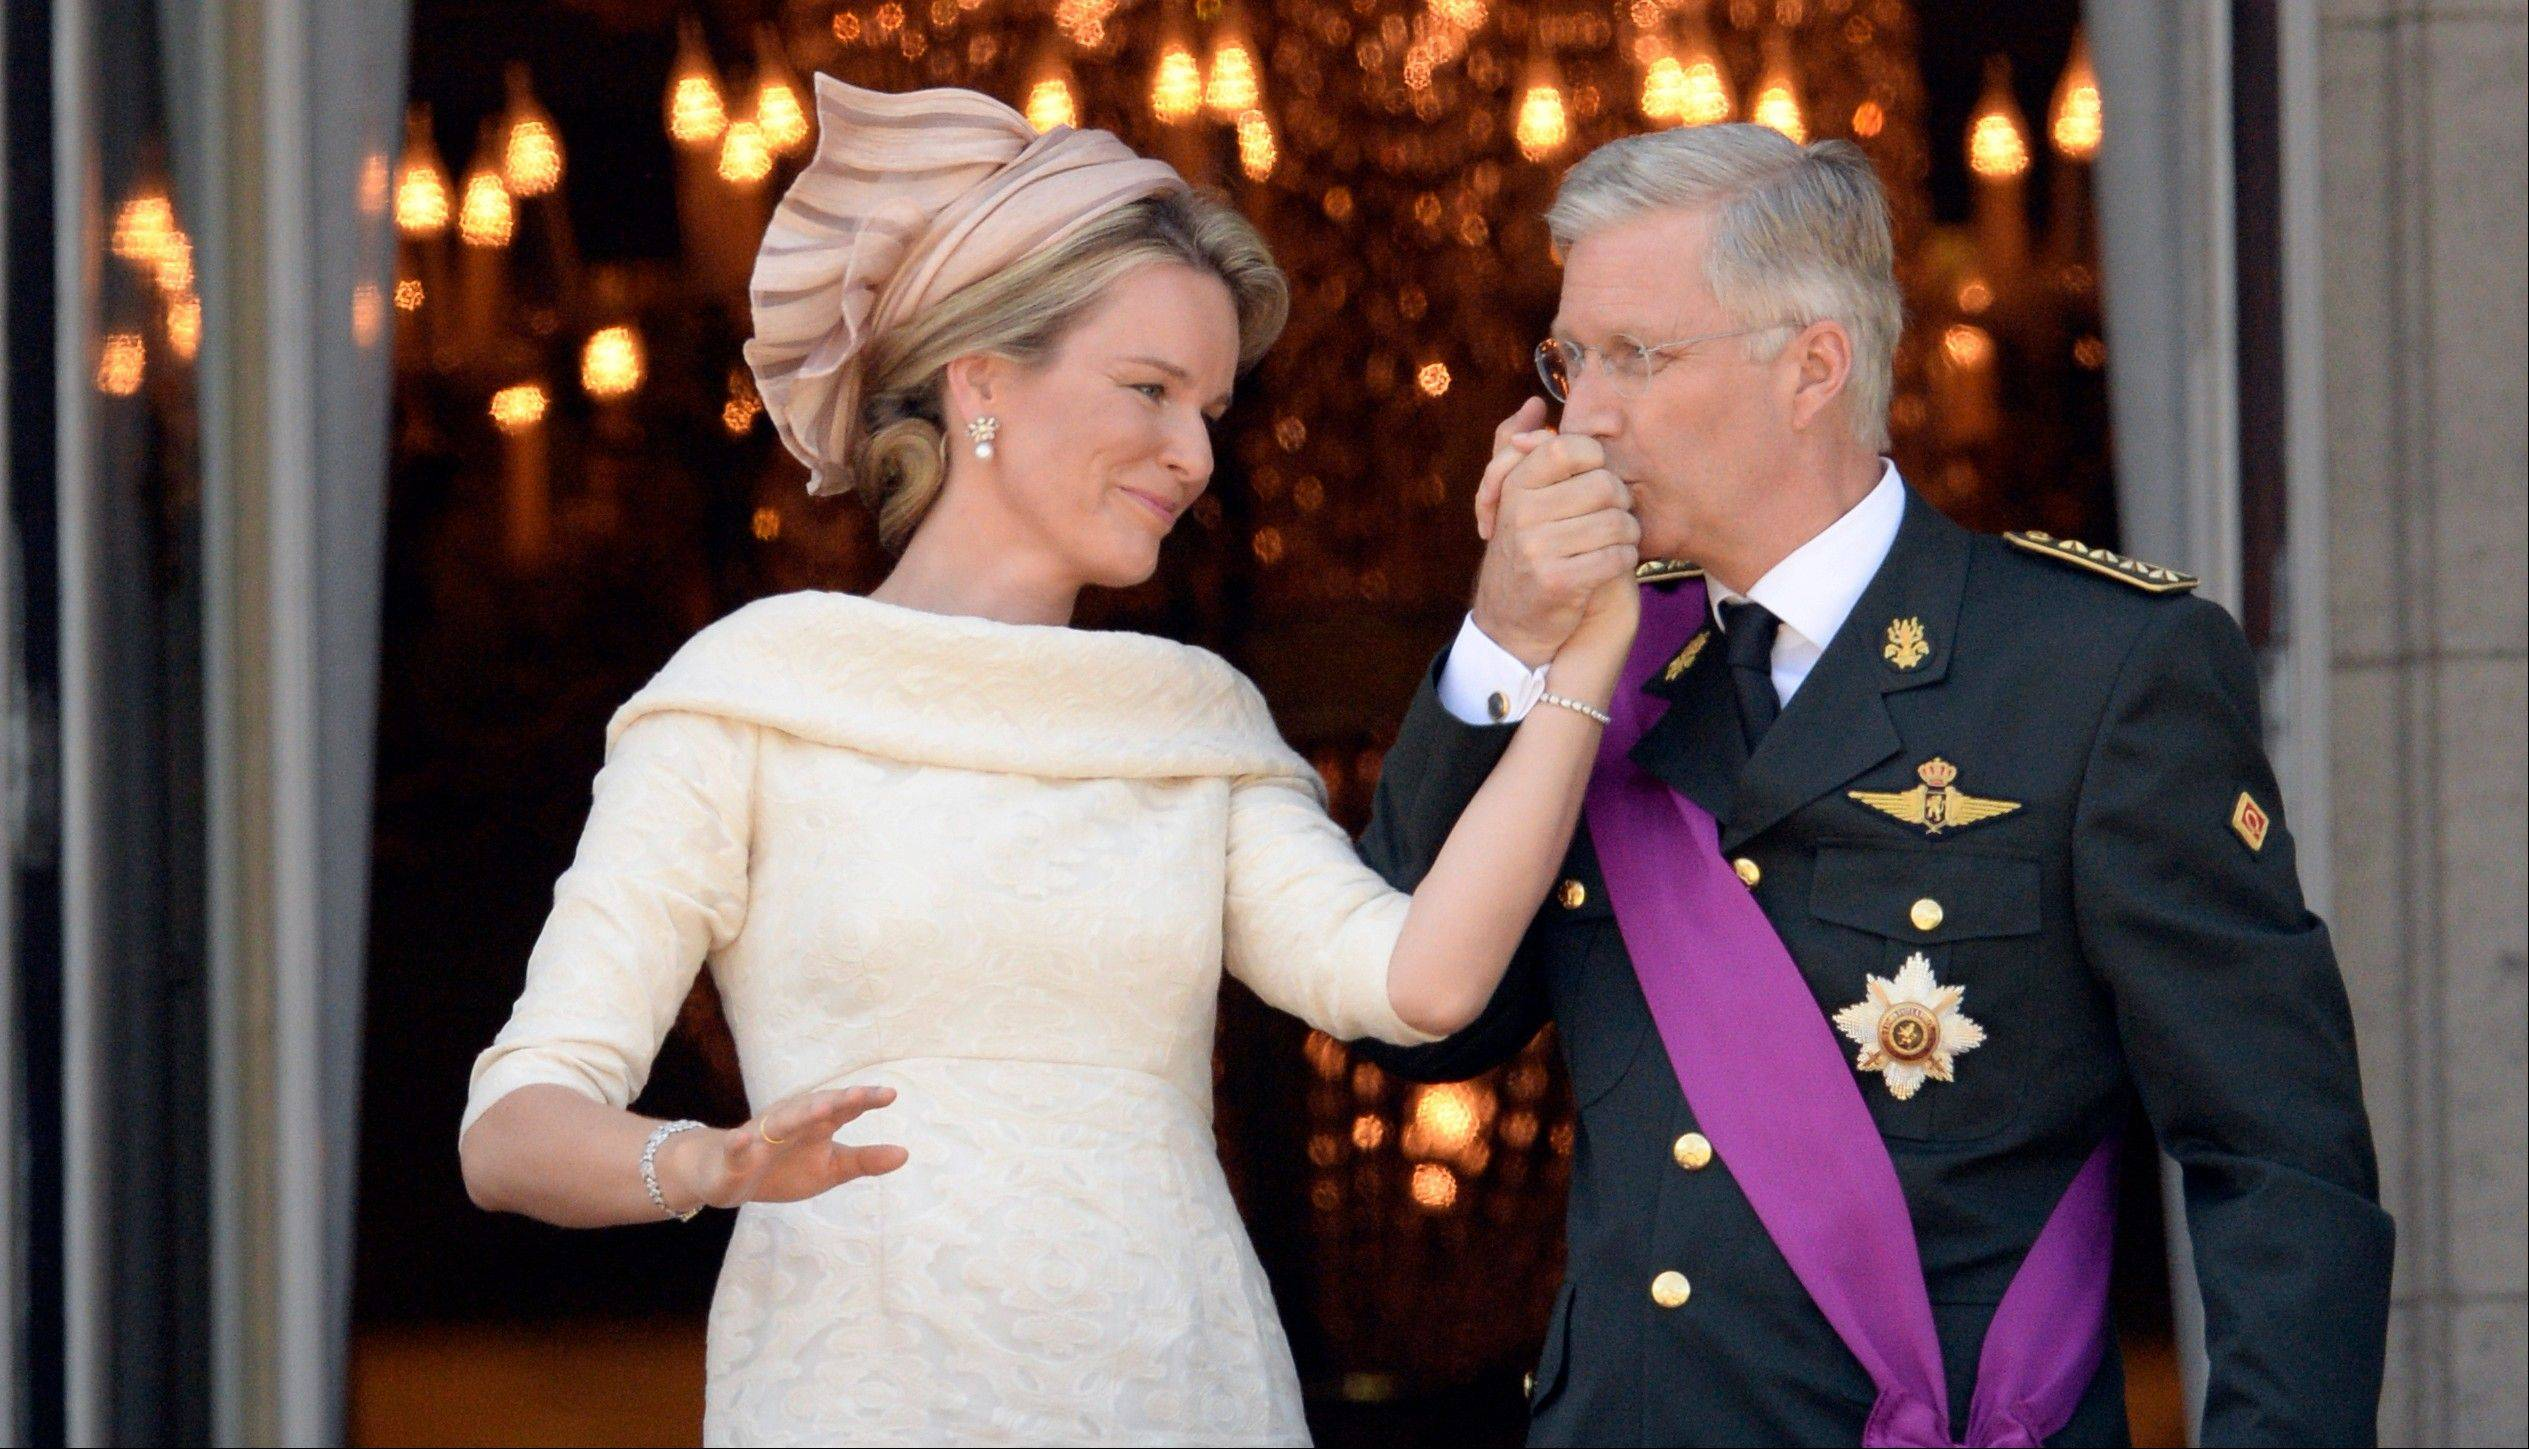 Belgium�s King Philippe, right, kisses the hand of Queen Mathilde as they stand on the balcony of the royal palace in Brussels on Sunday, July 21, 2013. Philippe has taken the oath before parliament to become Belgium�s seventh king after his father Albert II abdicated as the head of this fractured nation. Earlier Sunday, the 79-year-old Albert signed away his rights as the kingdom�s largely ceremonial ruler at the royal palace in the presence of Prime Minister Elio Di Rupo, who holds the political power in this 183-year-old parliamentary democracy.